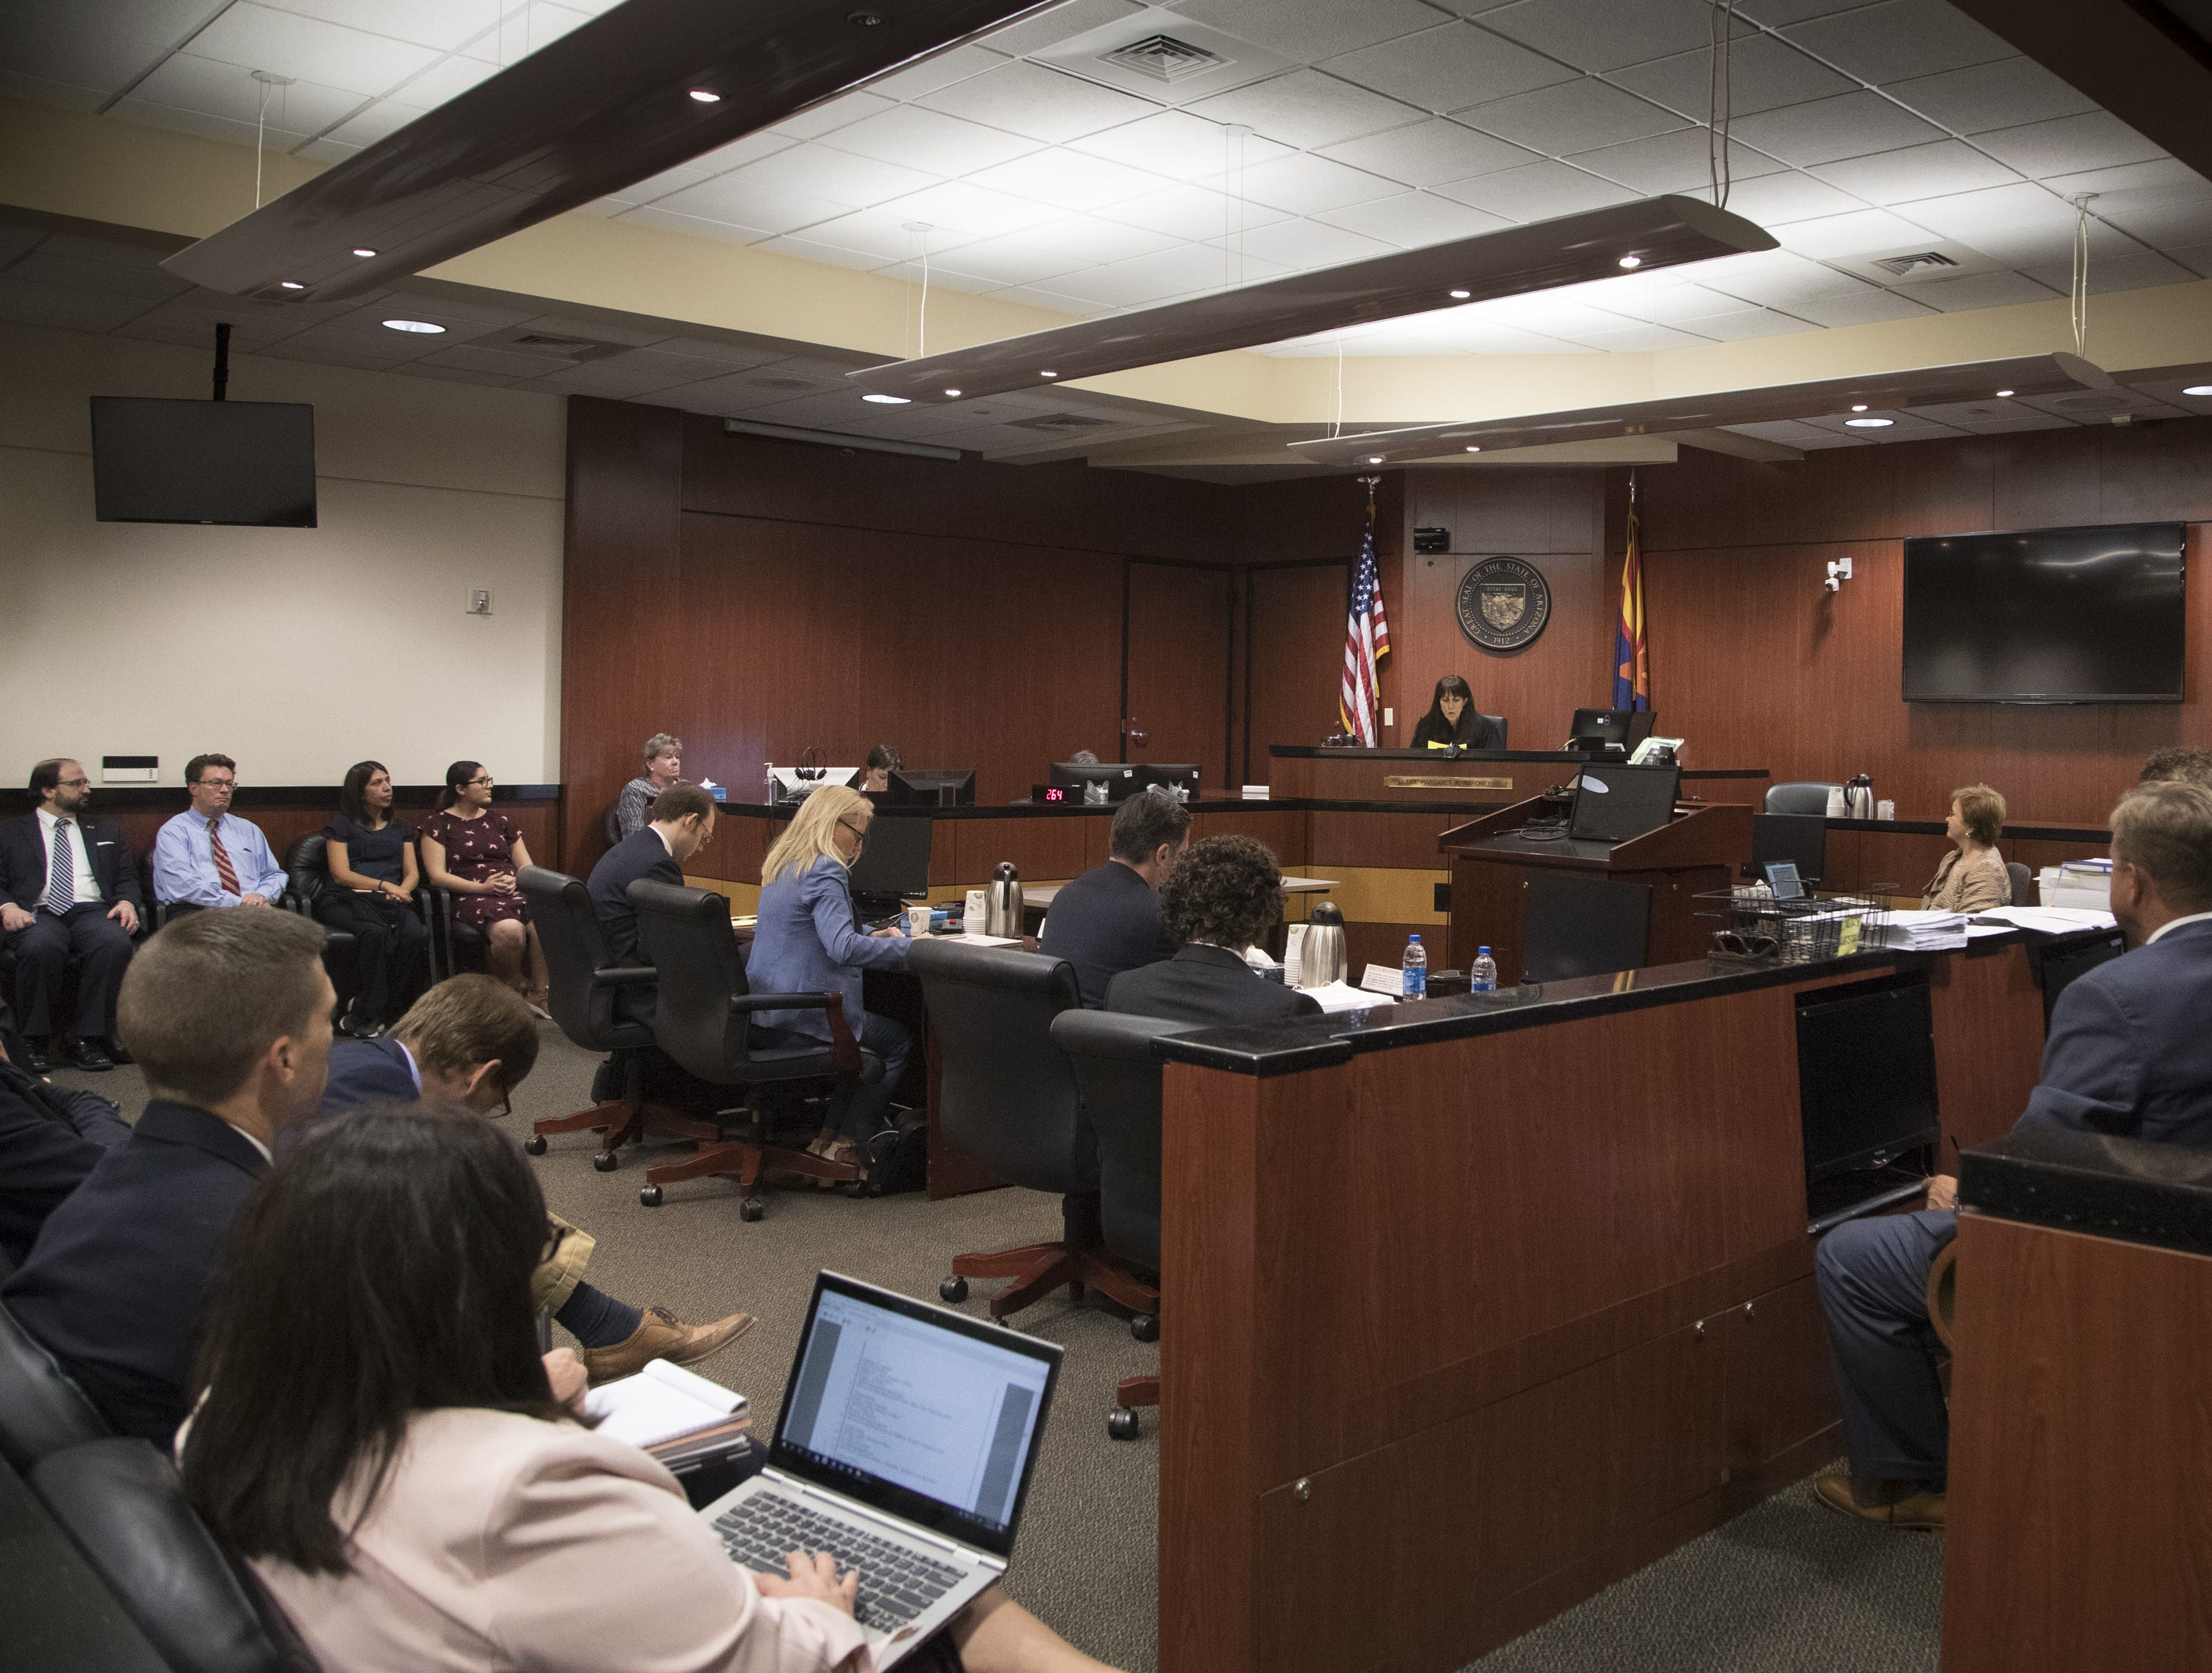 Judge Margaret Mahoney listens during a hearing in her Maricopa County Superior courtroom in Phoenix on Nov. 9, 2018.